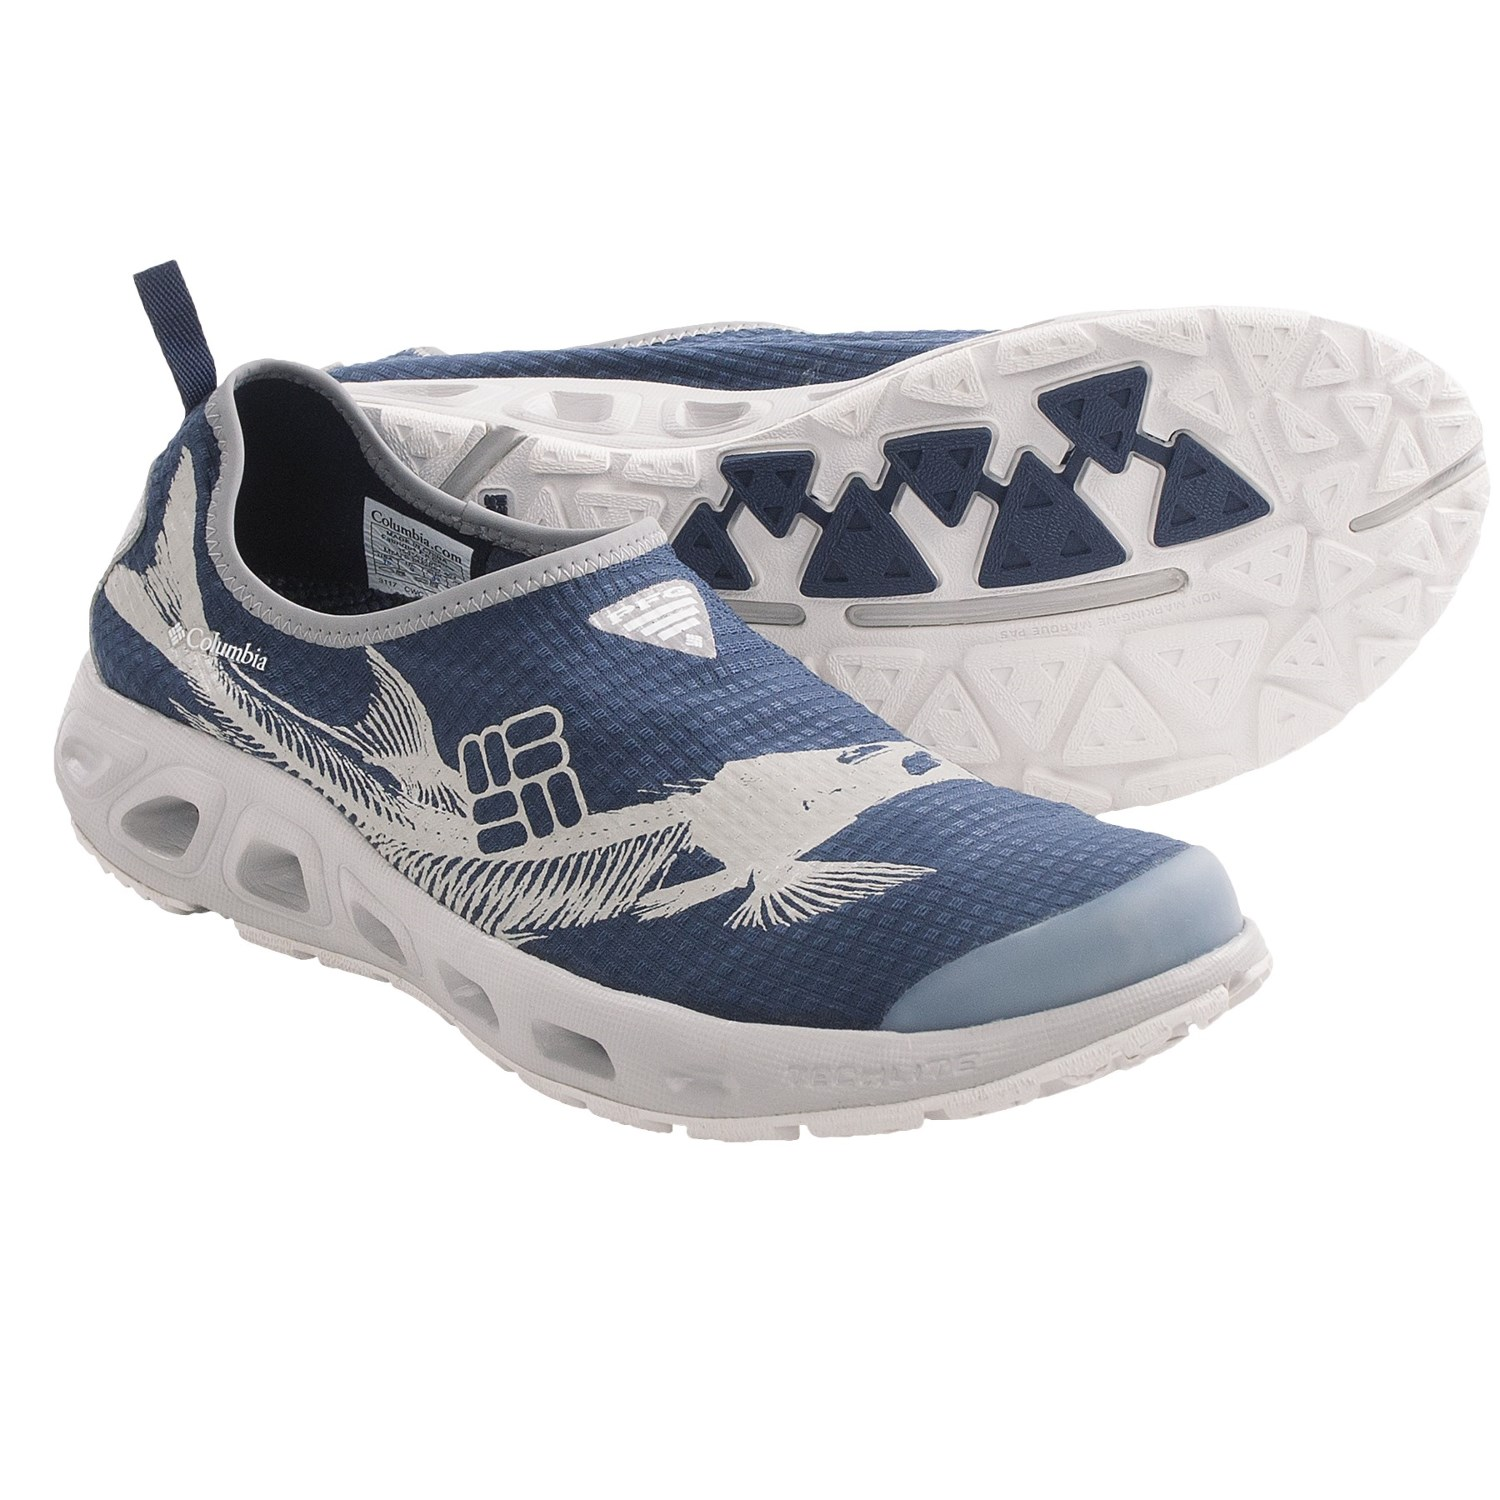 Columbia Sportswear Powerdrain Water Shoes (For Women